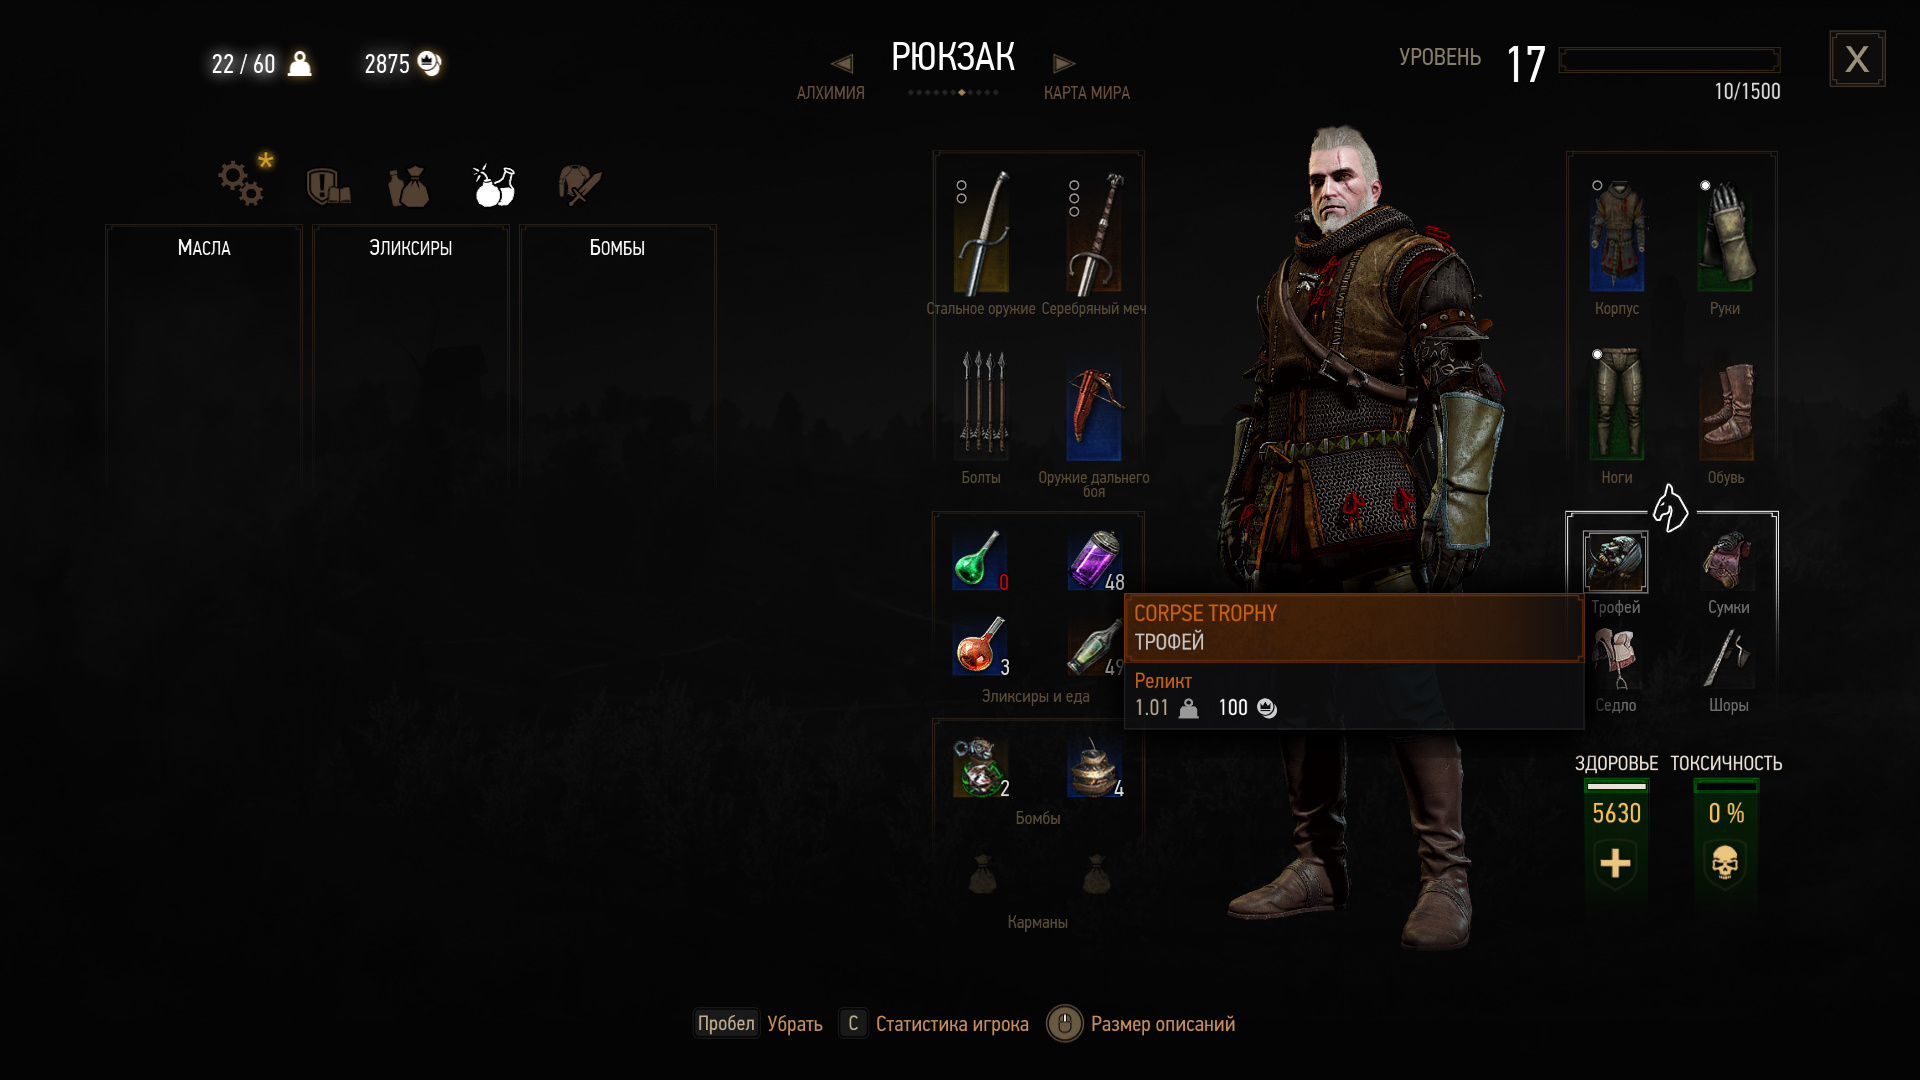 Monsters Trophies At The Witcher 3 Nexus